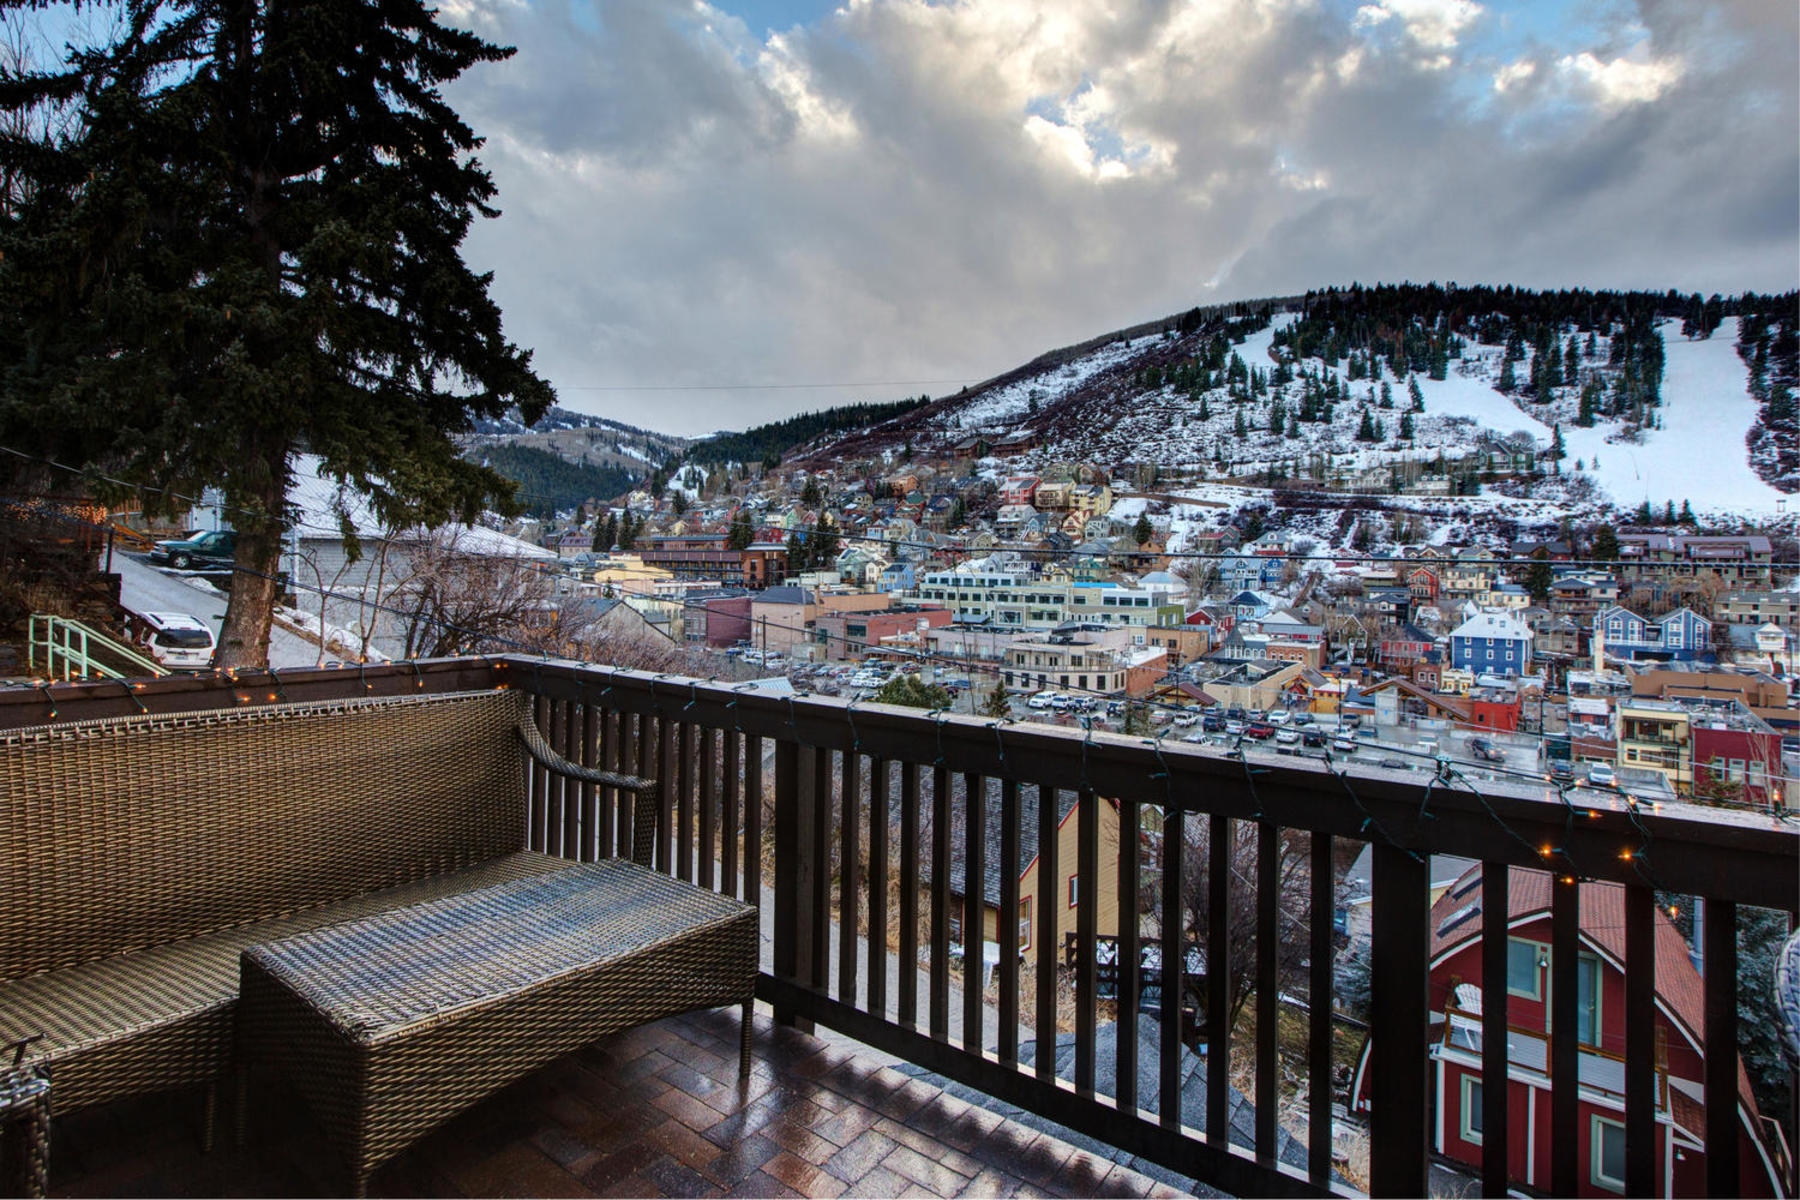 Villa per Vendita alle ore Beautifully Appointed with Ski Run Views 428 Ontario Ave Park City, Utah, 84060 Stati Uniti